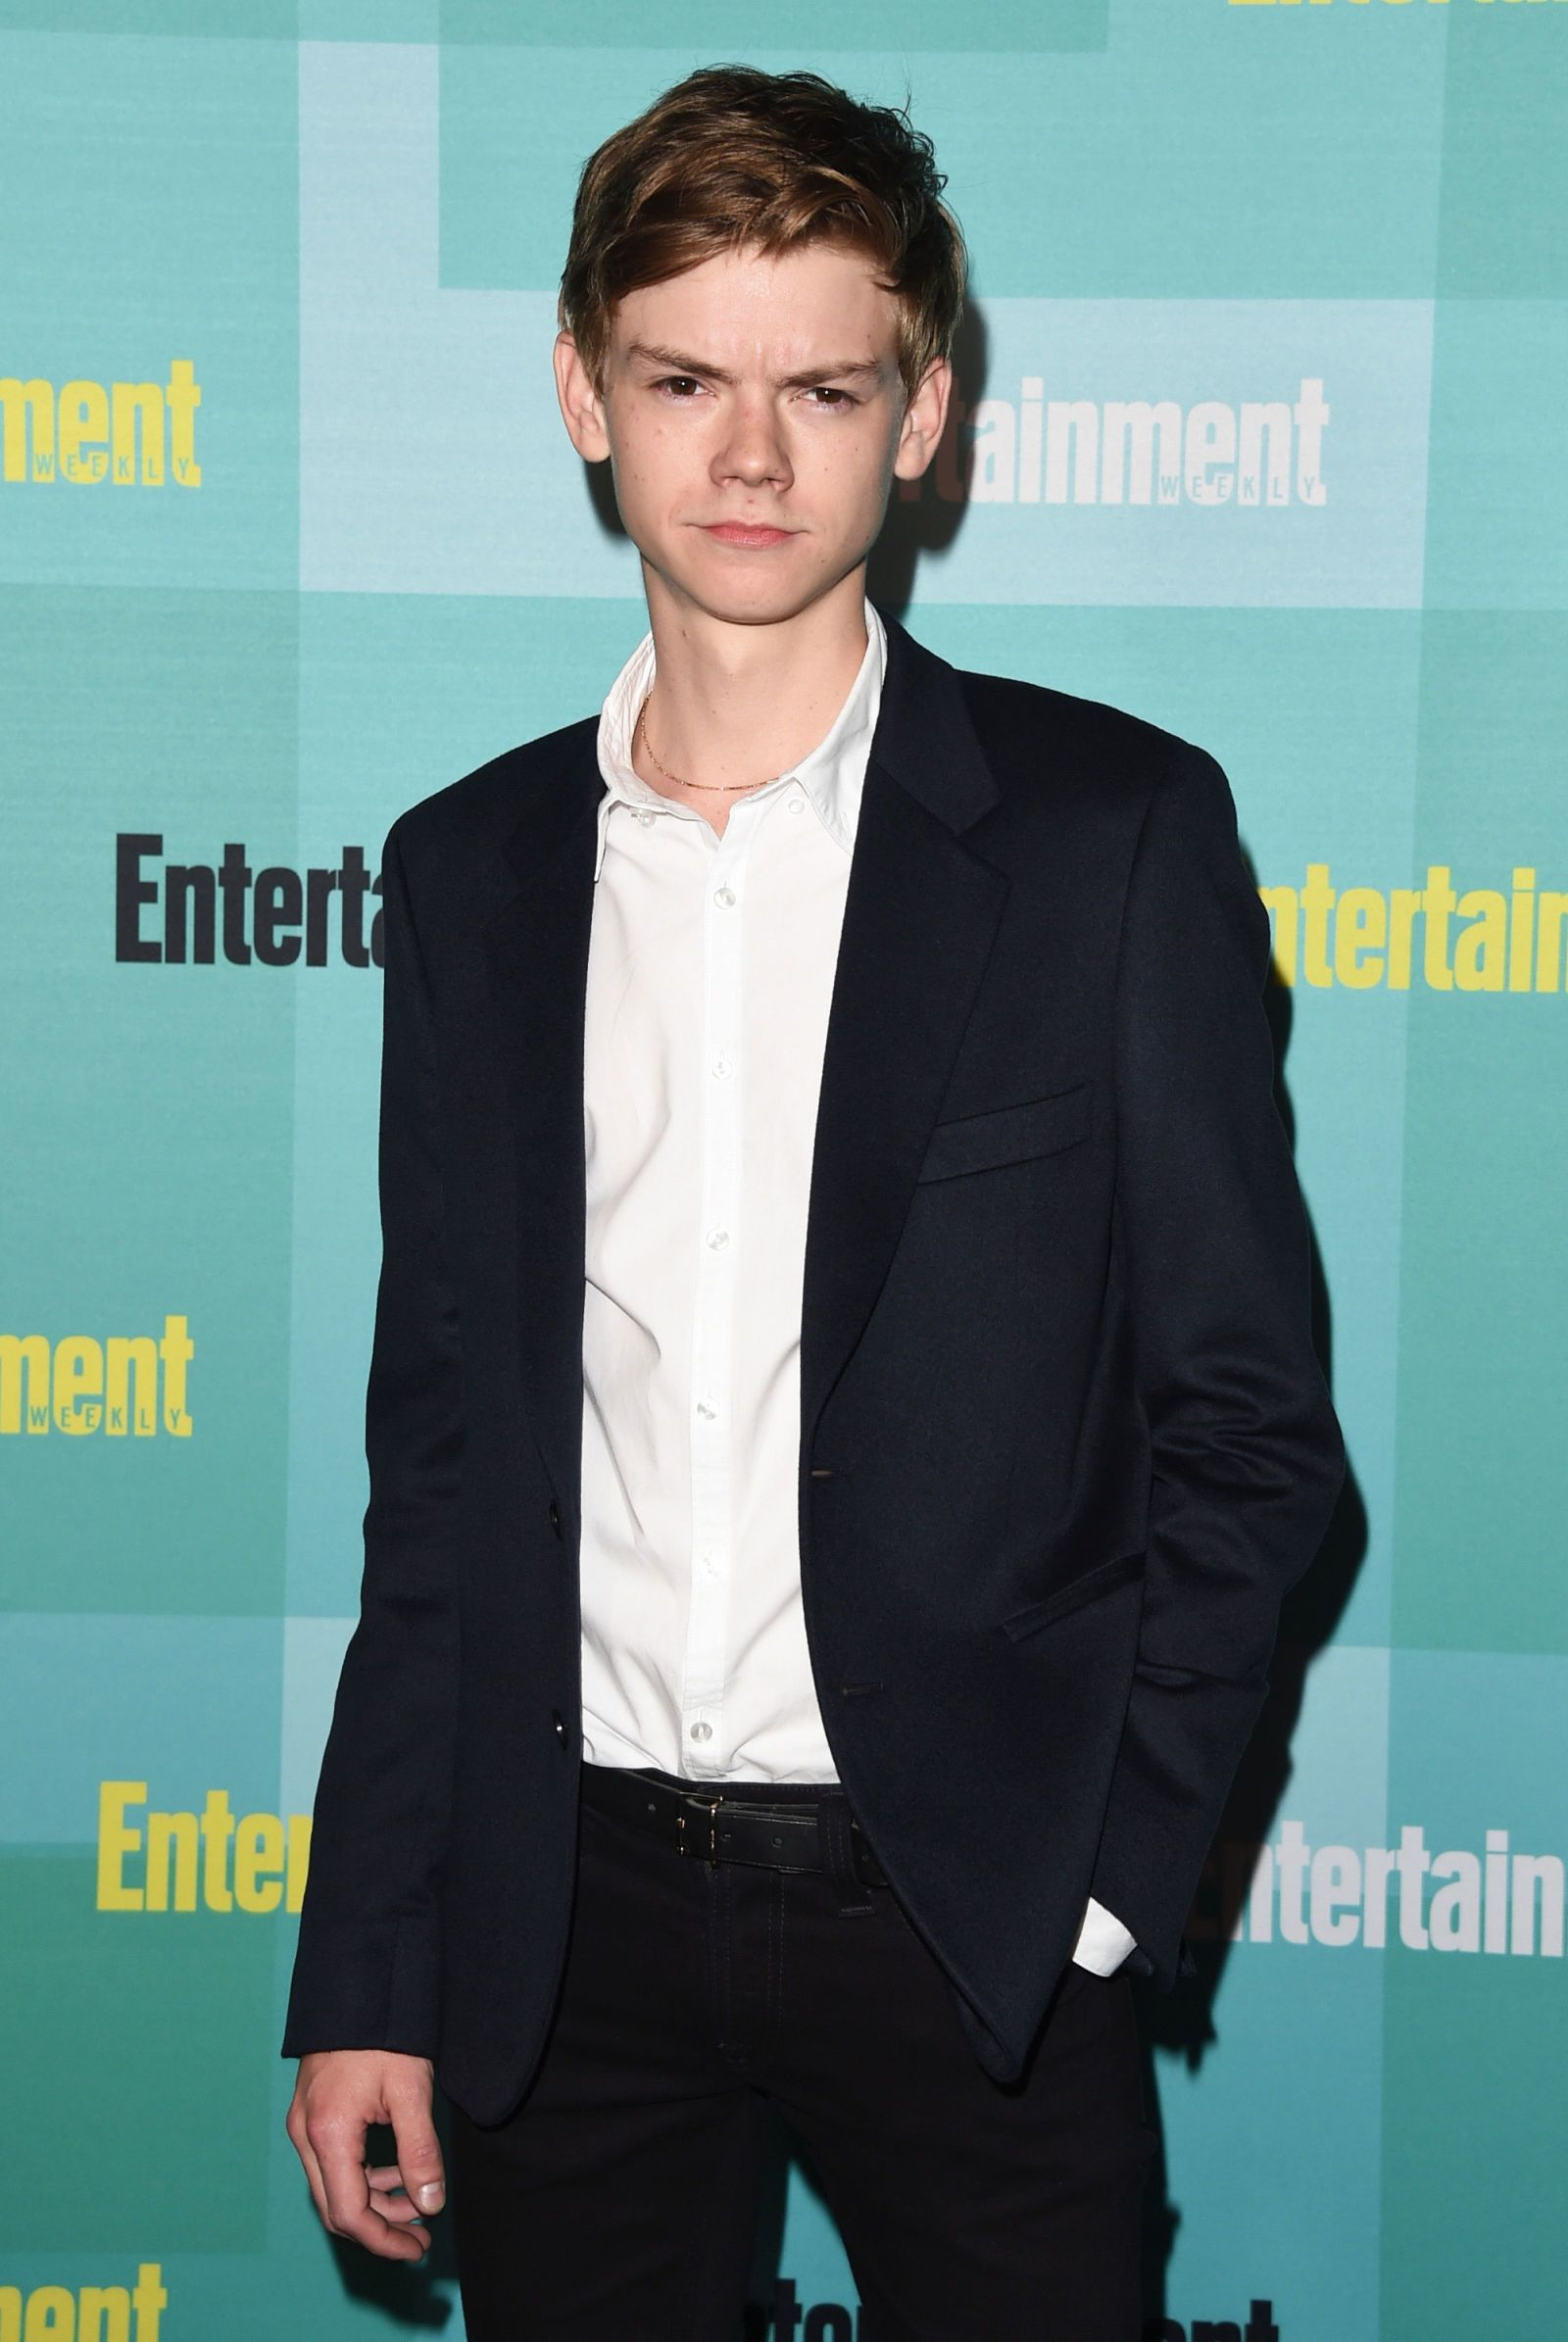 This Is What The Boy From Love Actually Looks Like Now Thomas Brodie Sangster Thomas Brodie Brodie Sangster